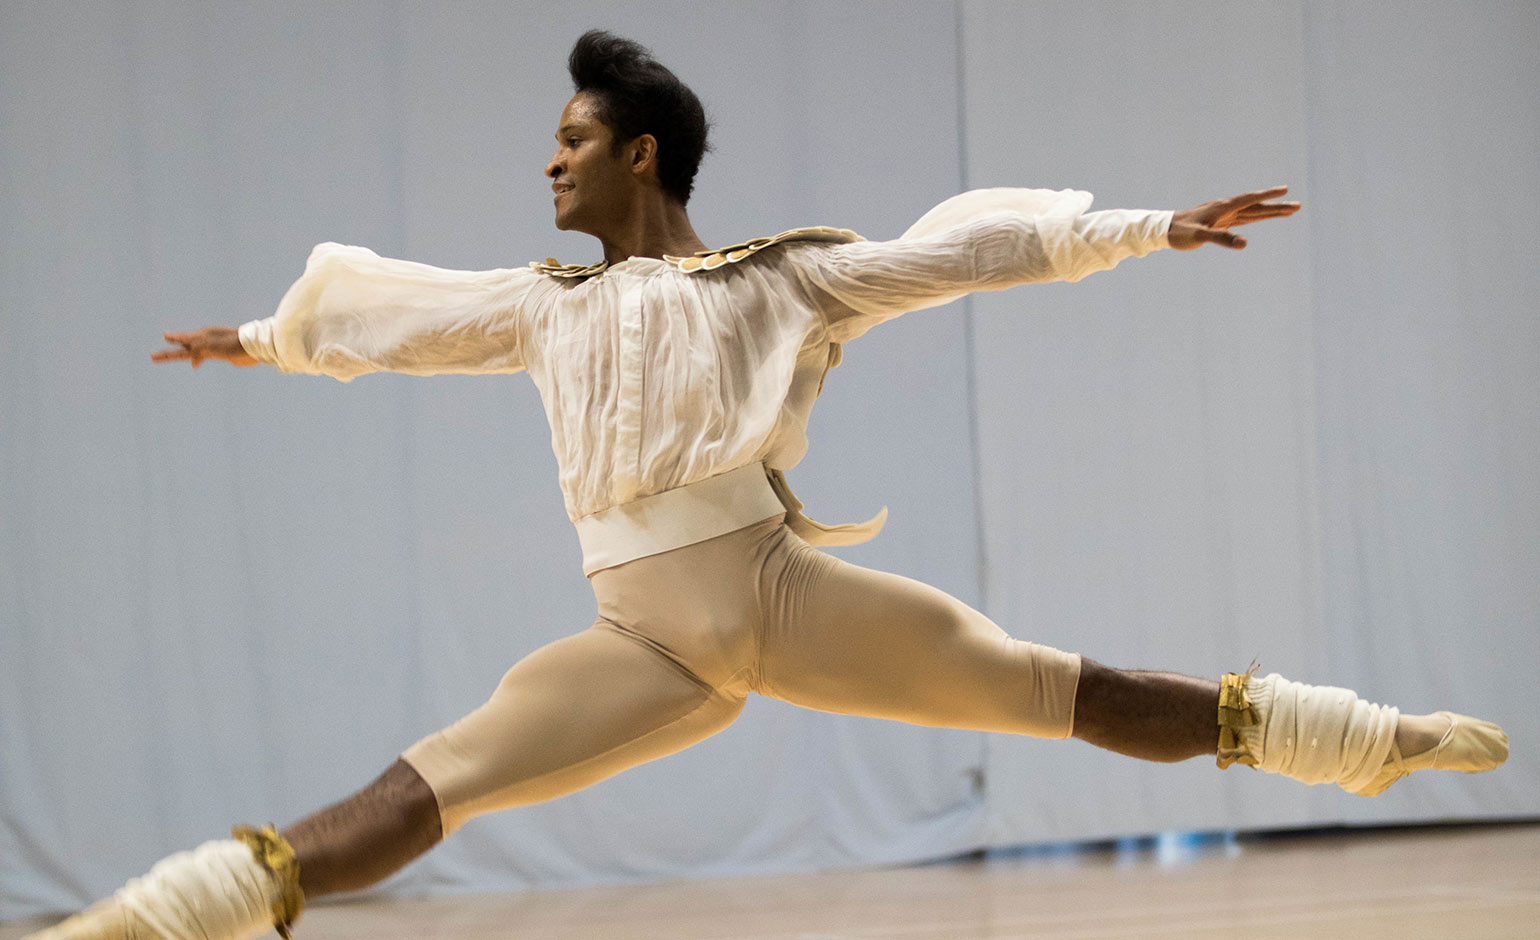 Special Royal Ballet performance marks One Young World Bath initiative